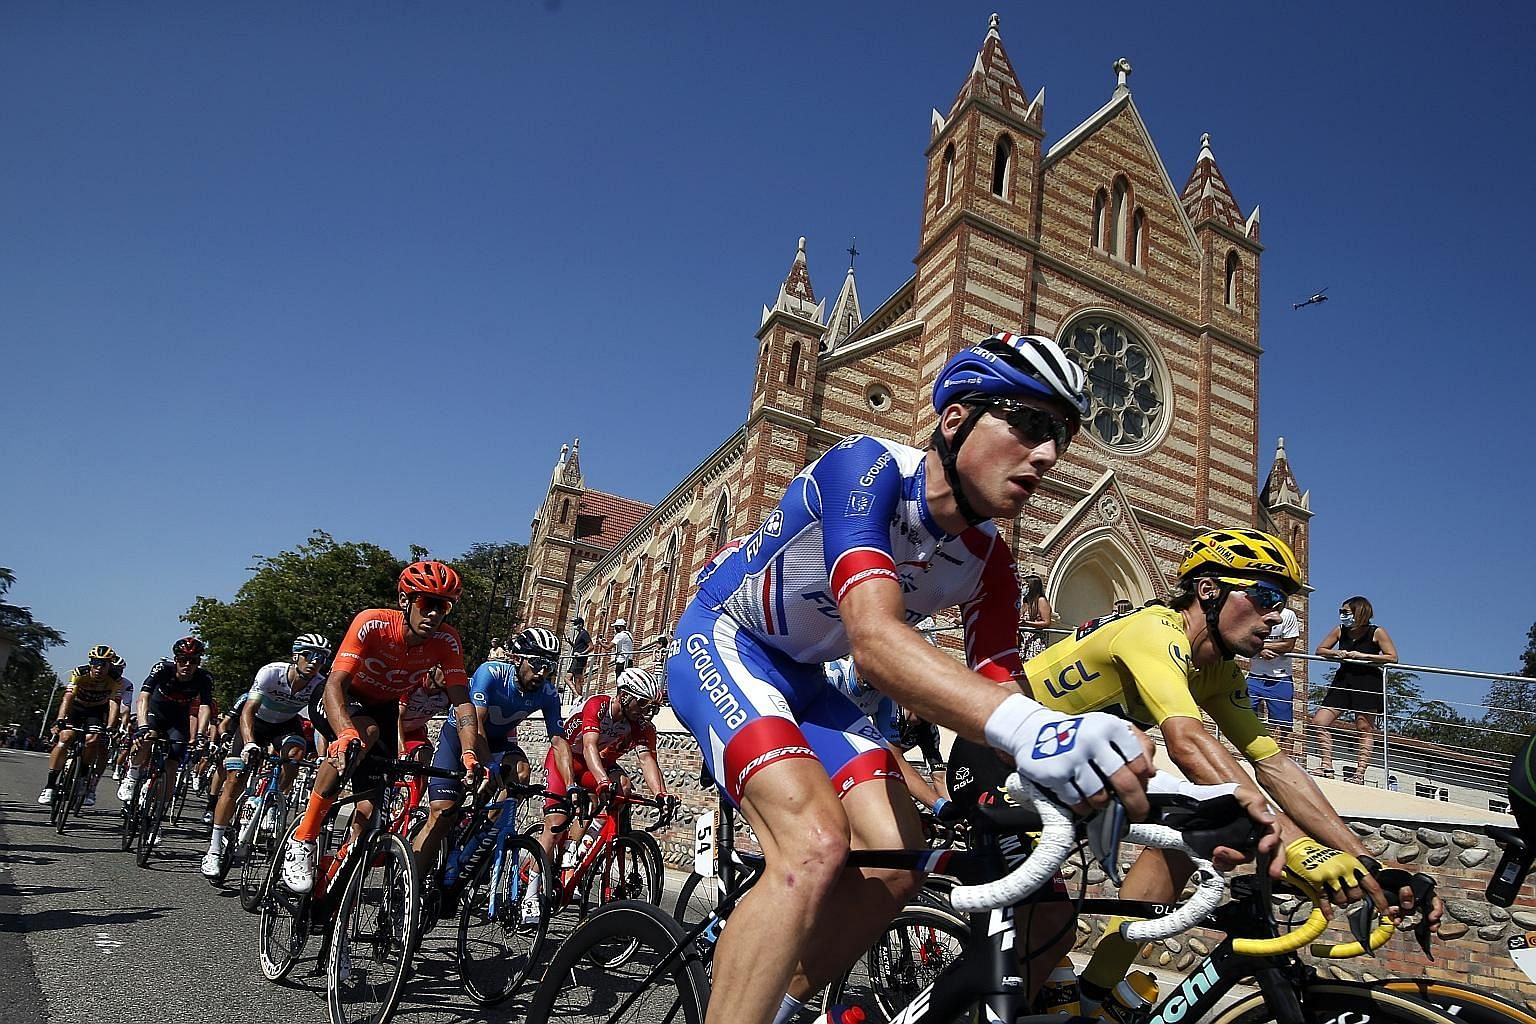 NTT's new race centre website offers cycling enthusiasts a more in-depth look at Tour de France cyclists such as overall leader Primoz Roglic (right) of Jumbo-Visma. PHOTO: EPA-EFE